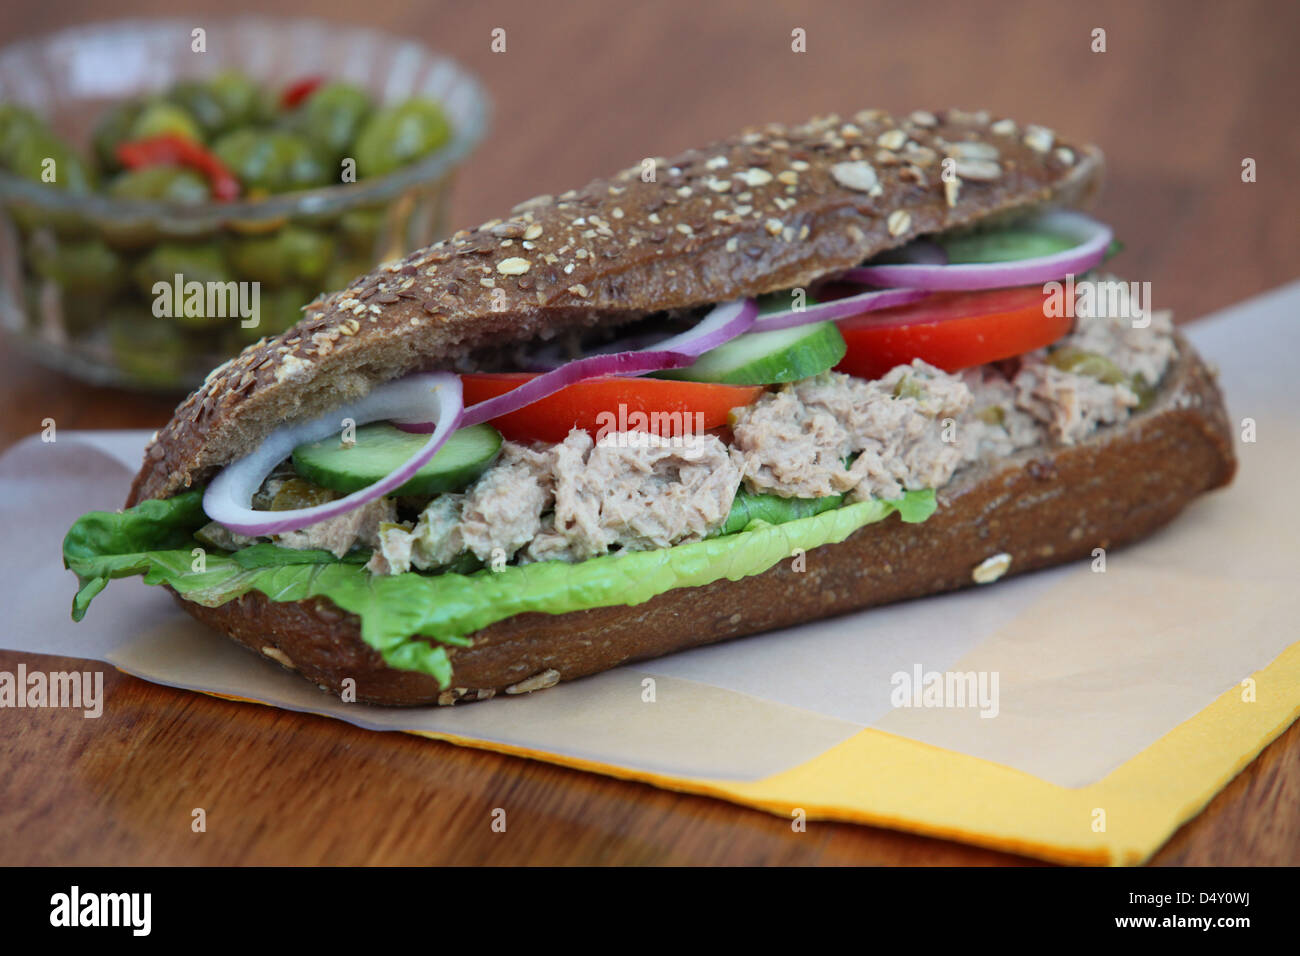 Tuna salad sandwich with tomato and cucumber - Stock Image